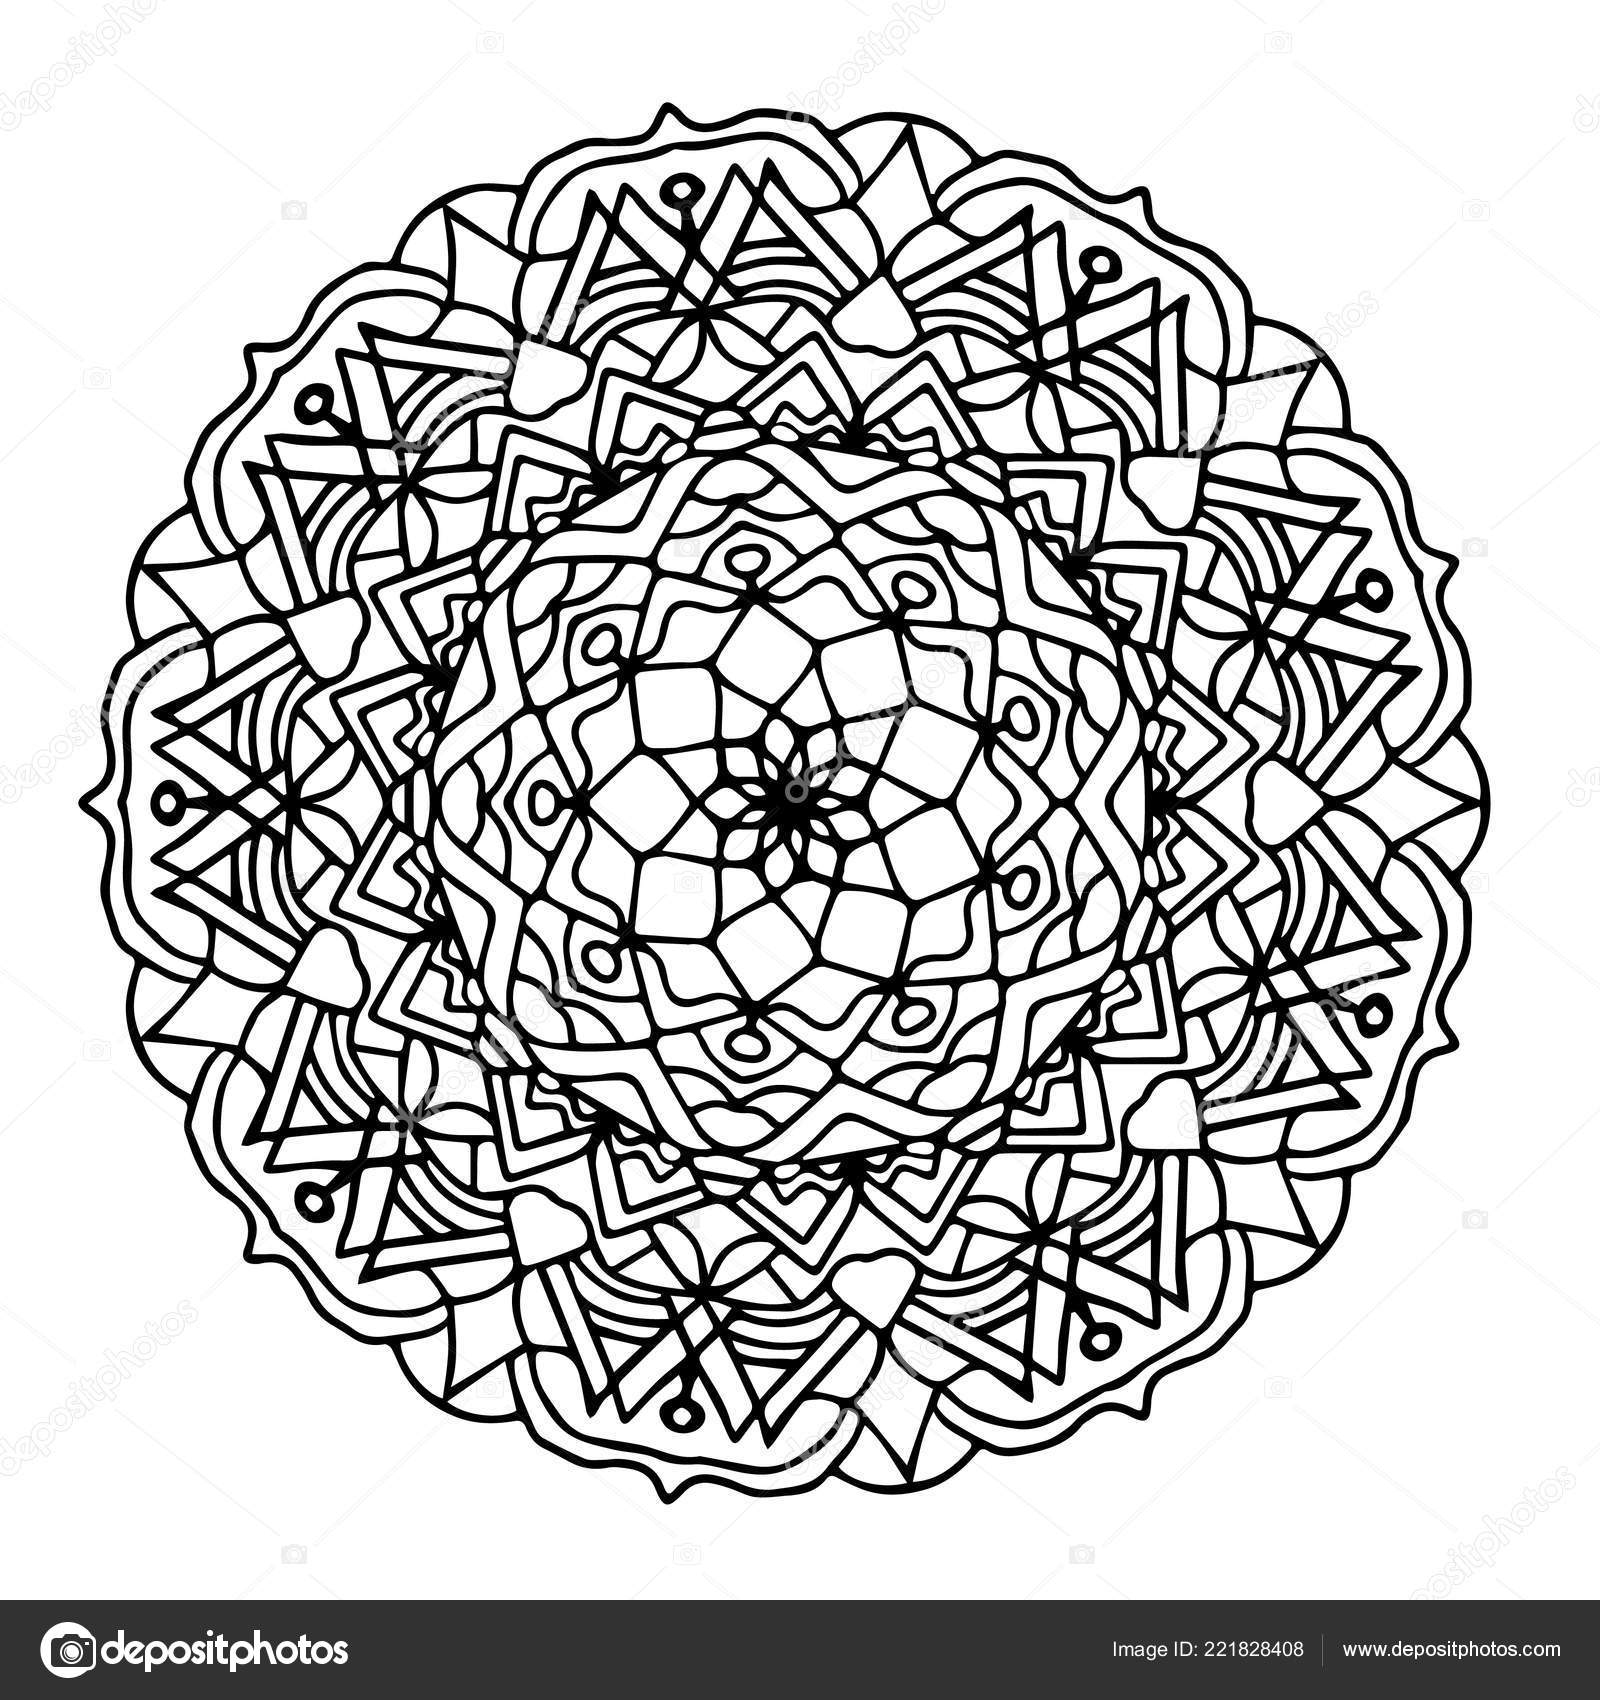 Monochrome Hand Drawn Floral Mandala Anti Stress Coloring Page For